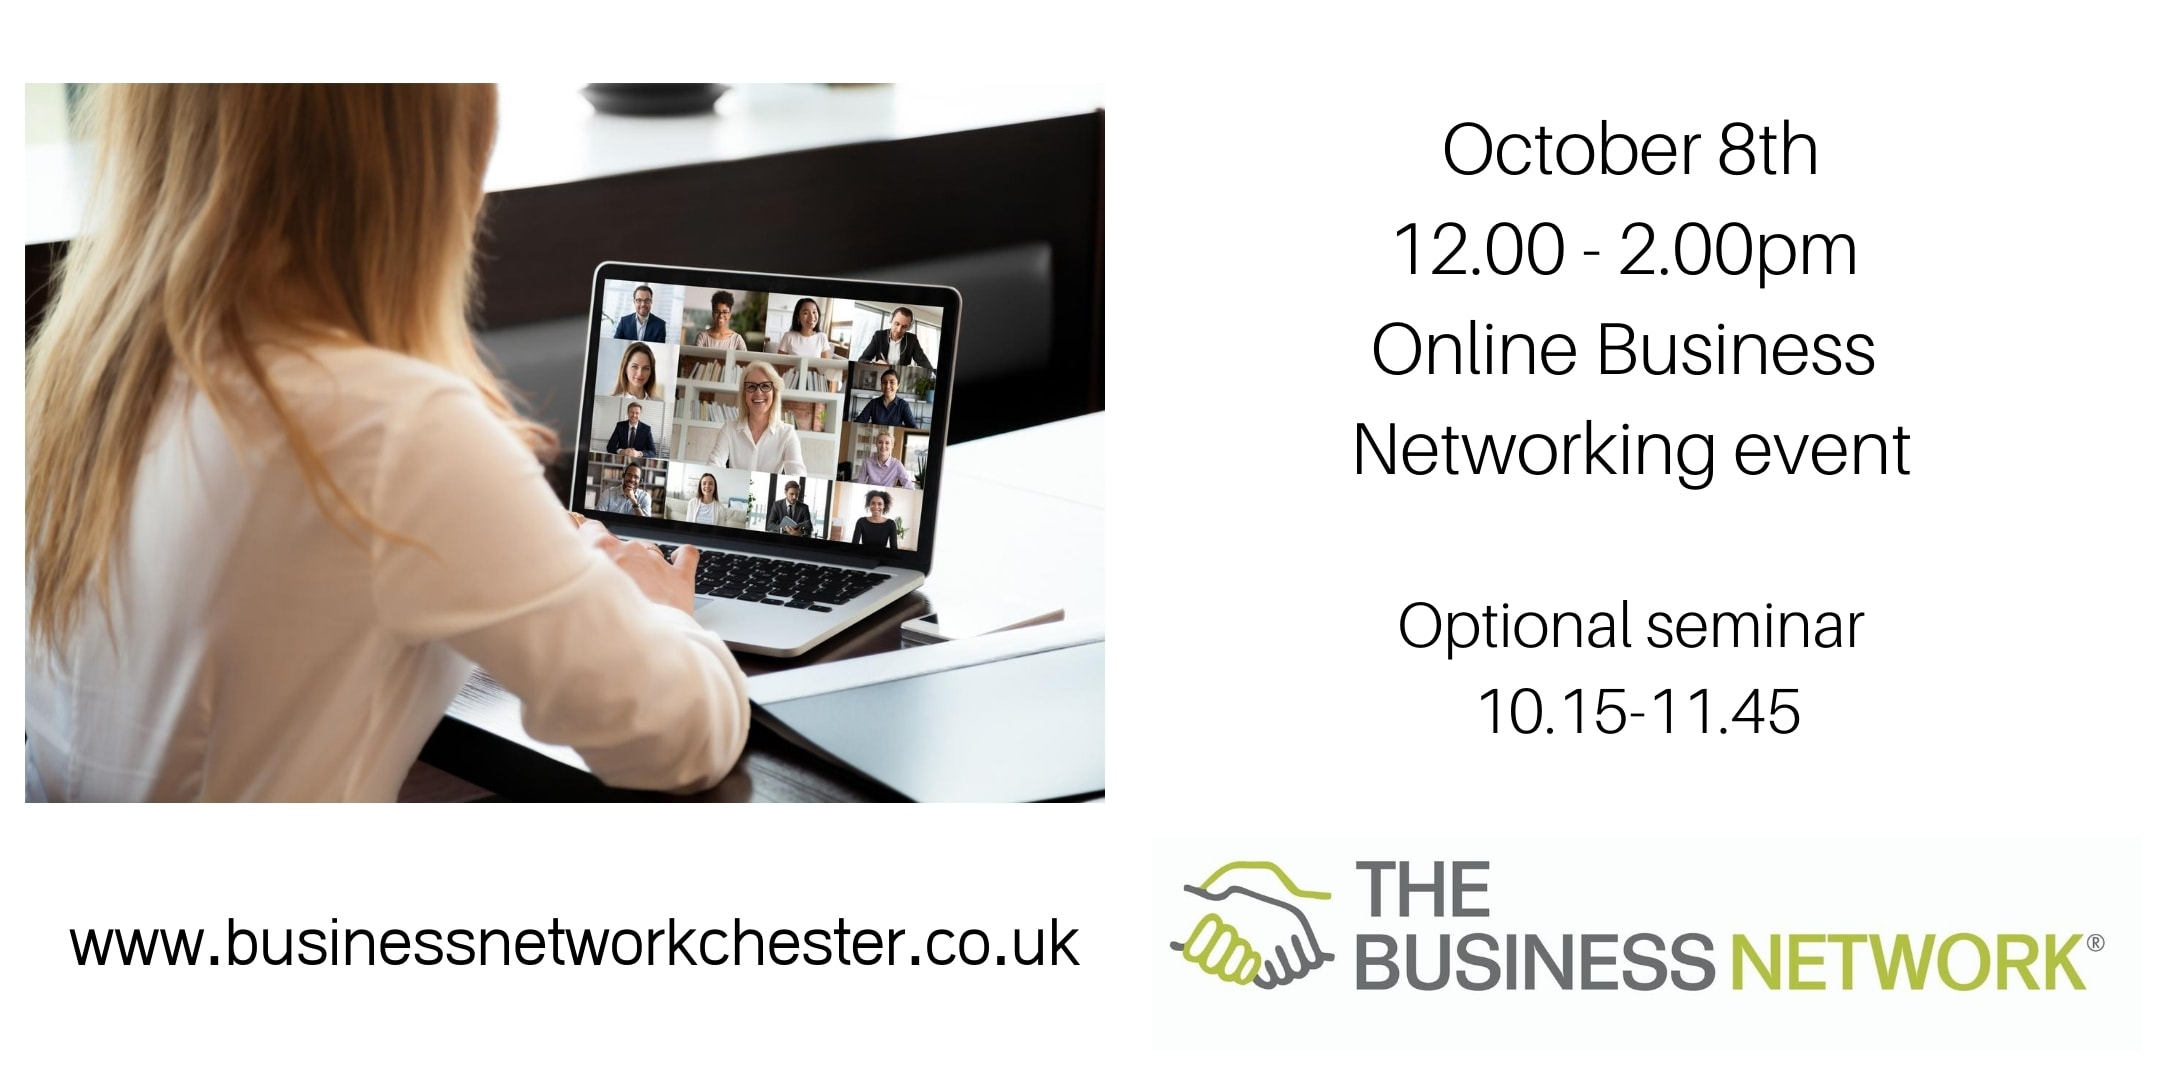 Oct 8th ONLINE BUSINESS NETWORKING EVENT